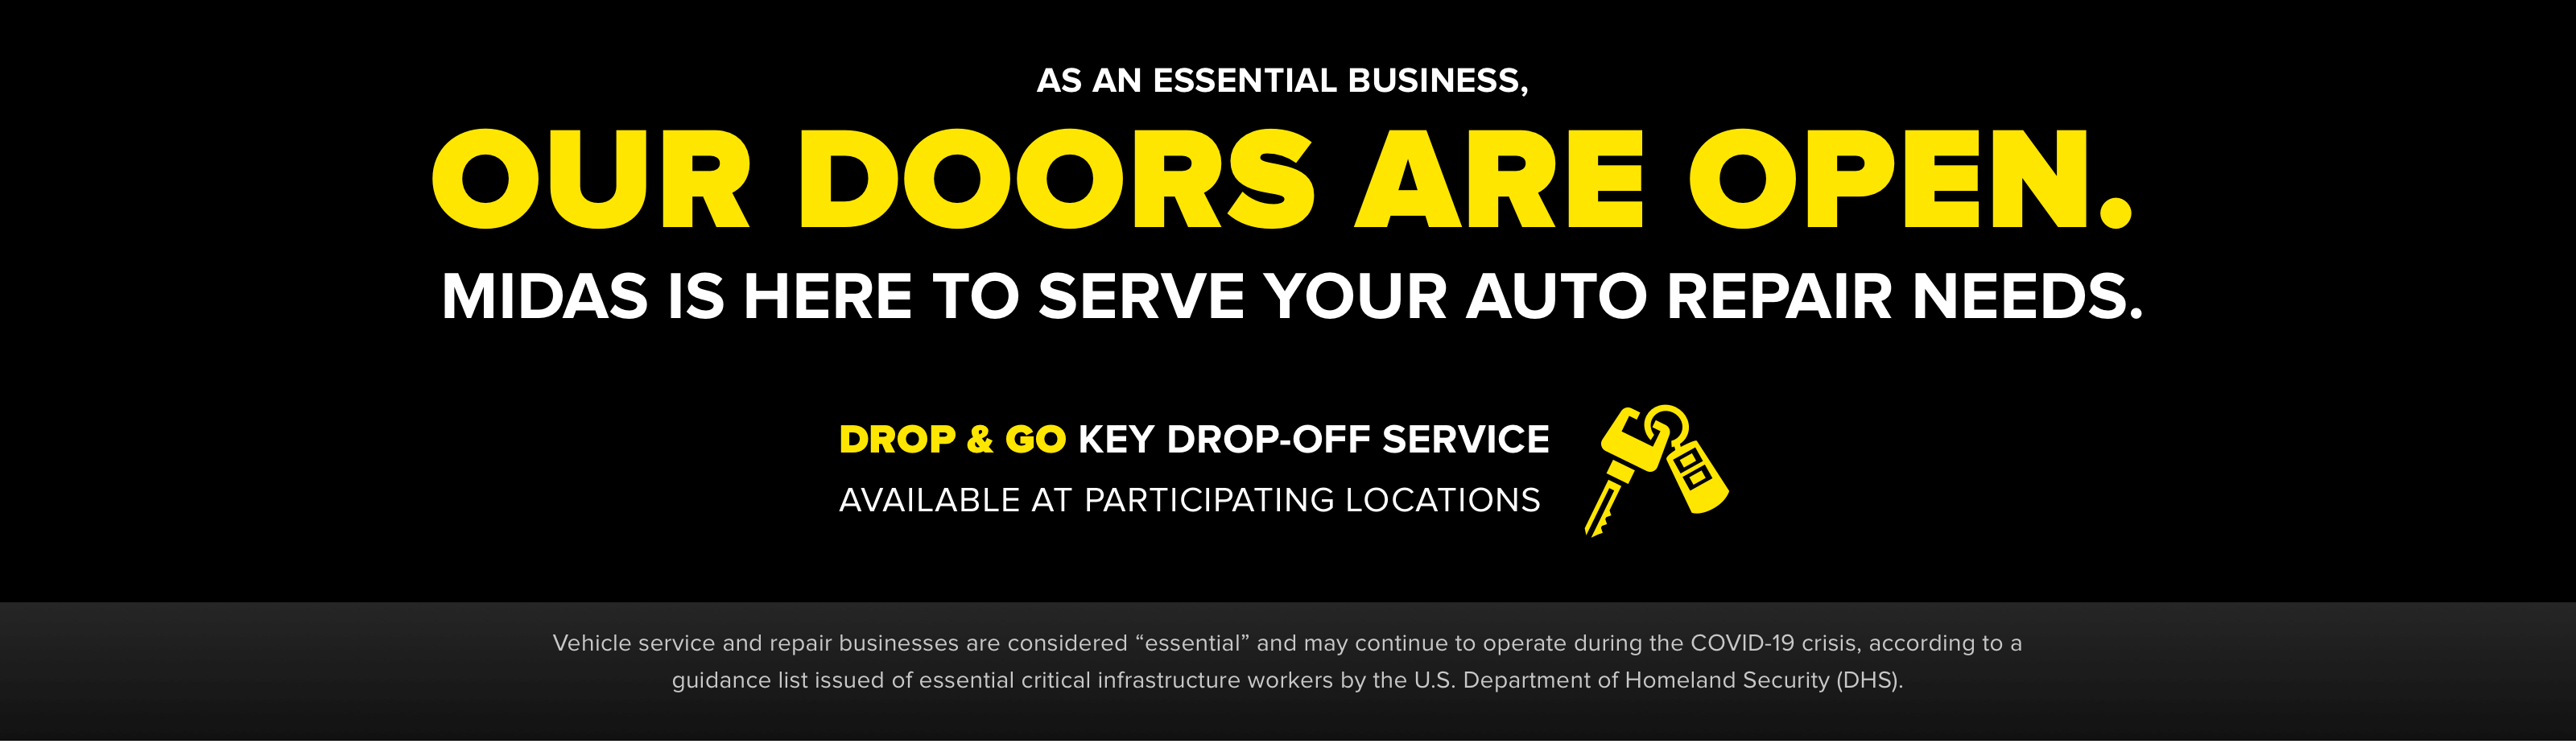 "As an essential business, our doors are open. Midas is here to serve your auto repair needs. Drop & go key drop-off service available at participating locations. Vehicle service and repair businesses are considered ""essential"" and may continue to operate during the COVID-19 crisis, according to a guidance list issued of essential critical infrastructure workers by the U.S. Department of Homeland Security (DHS)."